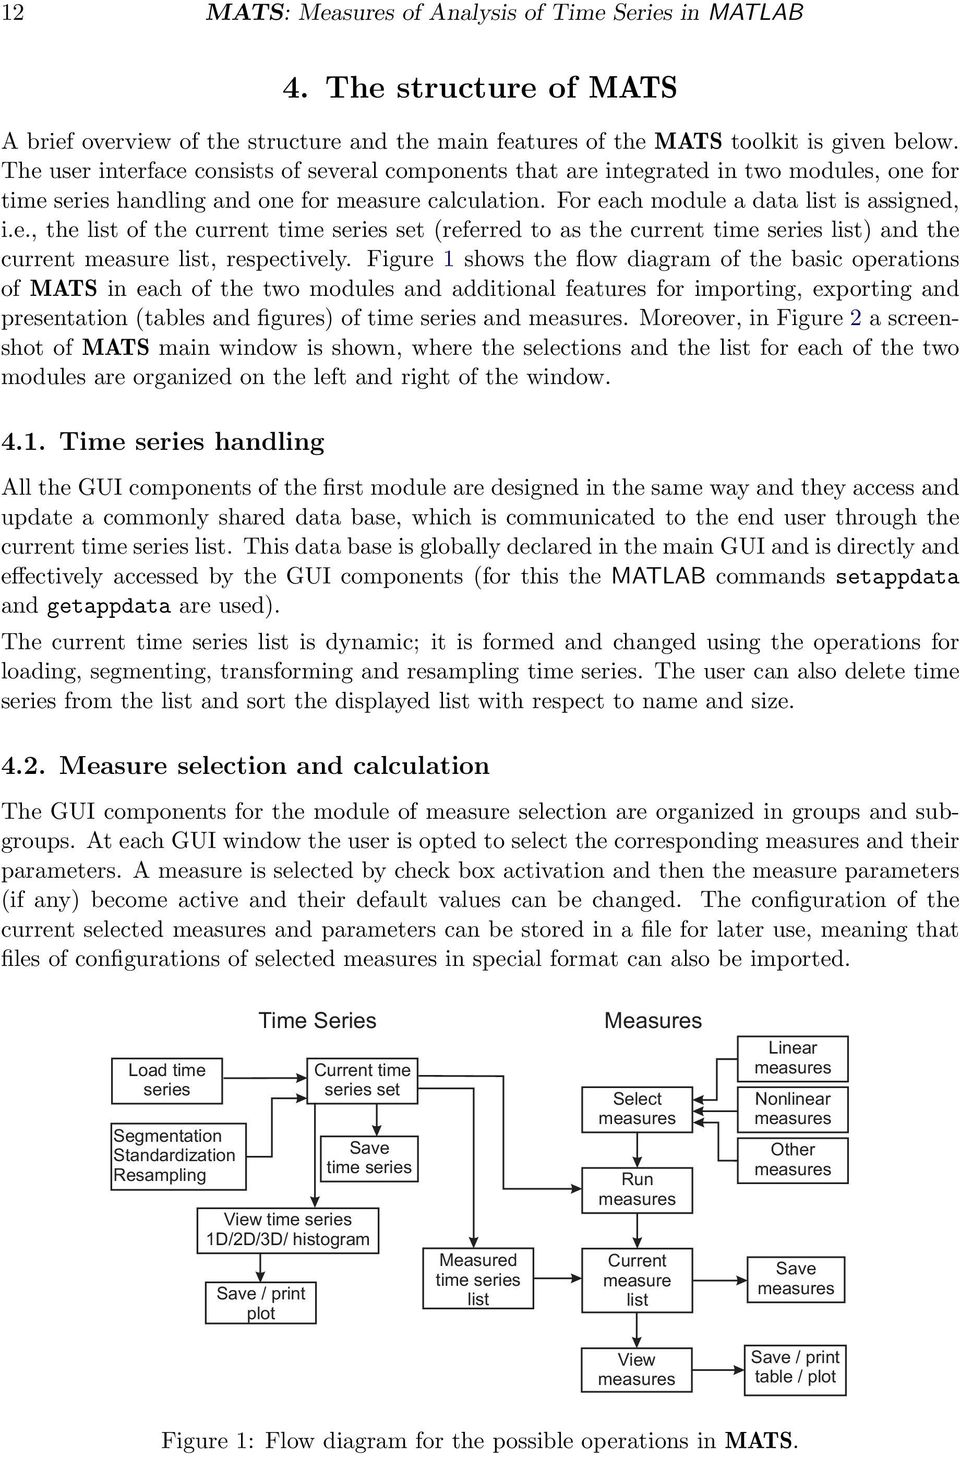 Figure 1 shows the flow diagram of the basic operations of MATS in each of the two modules and additional features for importing, exporting and presentation (tables and figures) of time series and